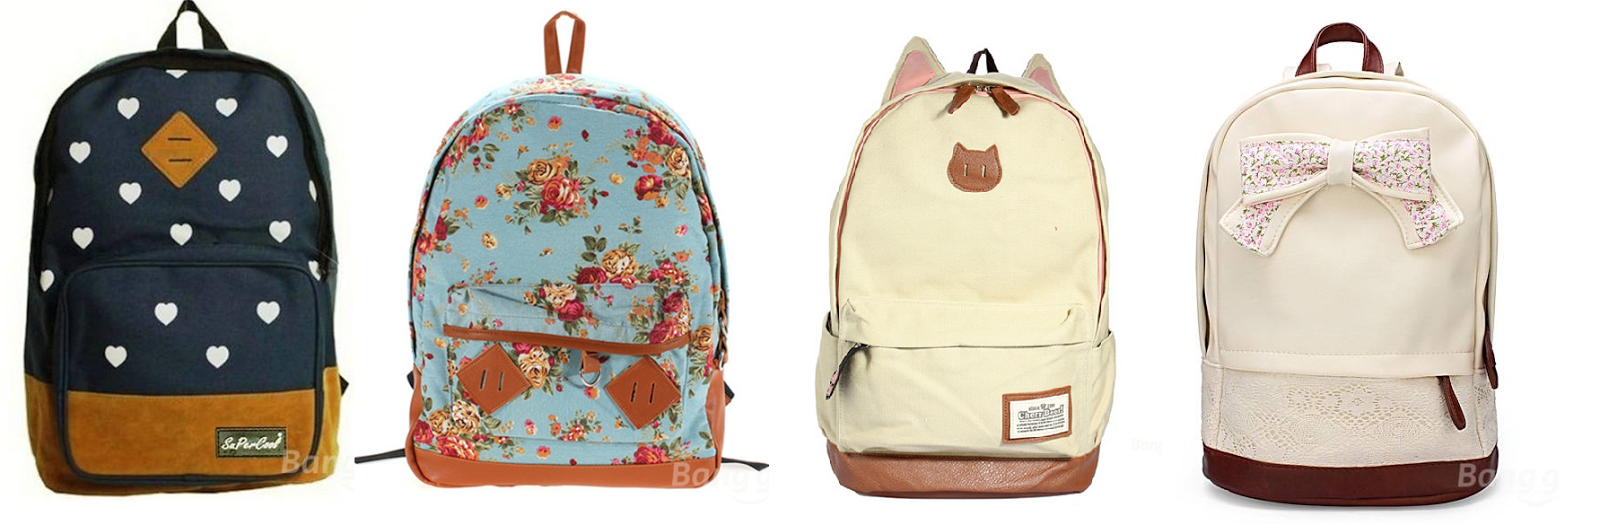 Cute Girly Backpacks - Crazy Backpacks